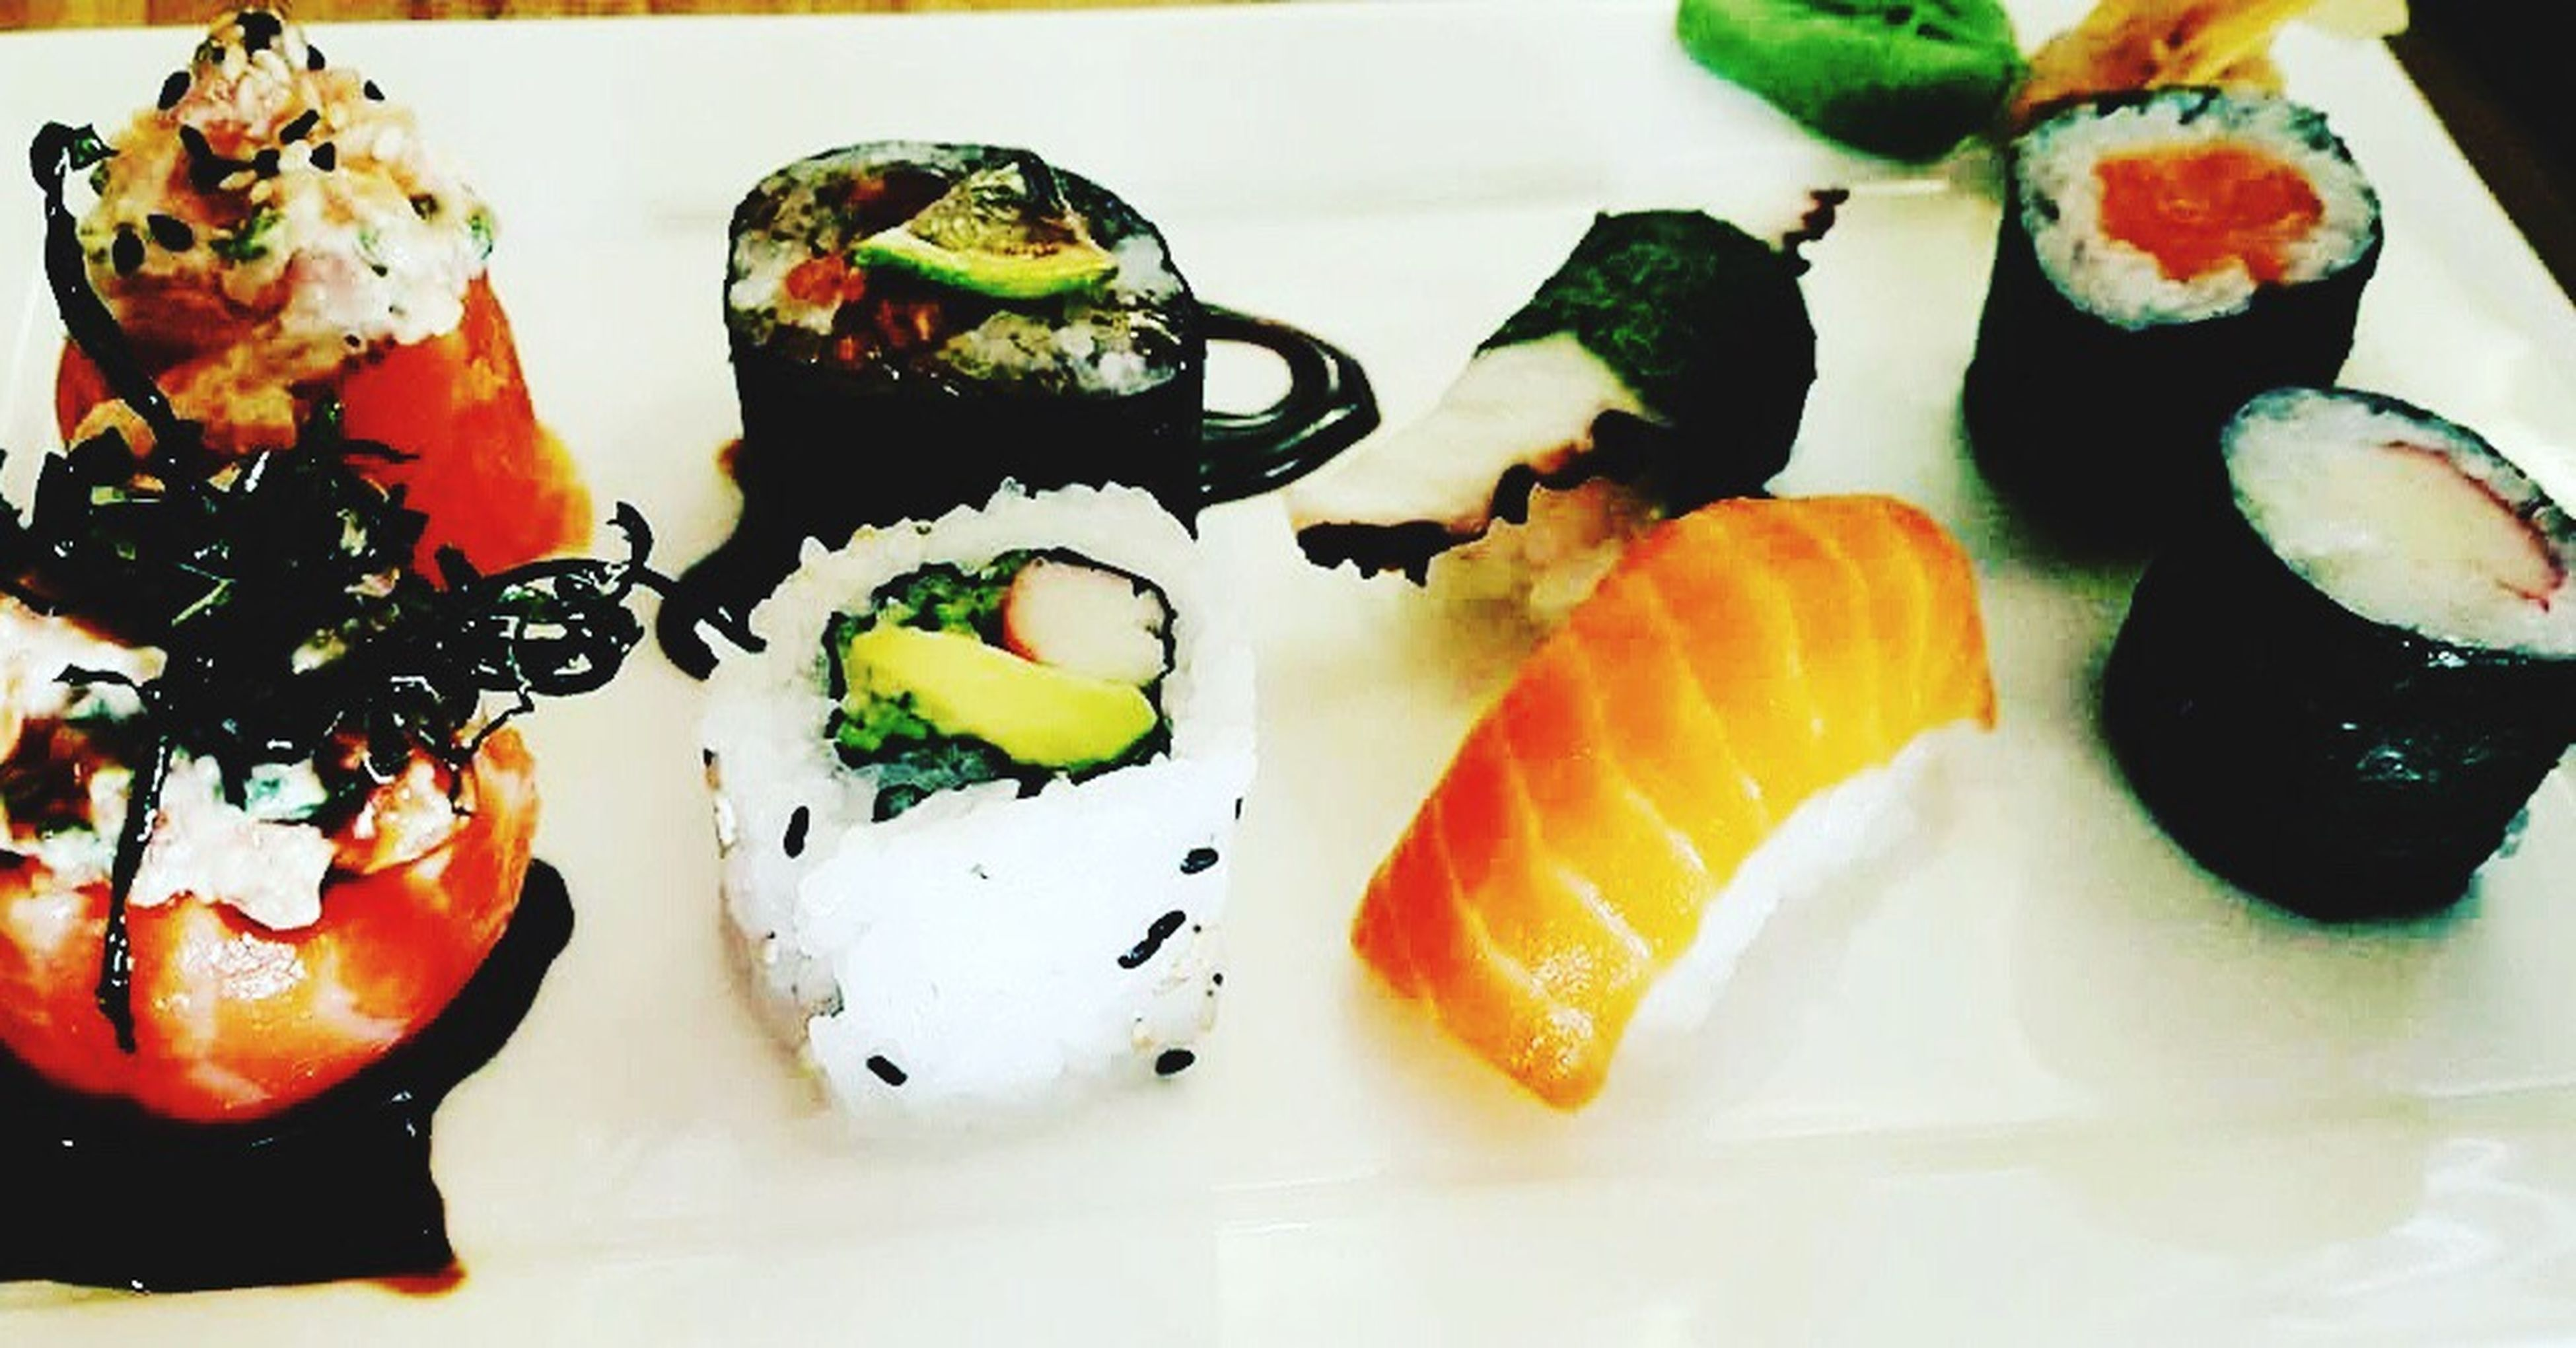 food and drink, food, indoors, freshness, sushi, close-up, healthy lifestyle, seafood, ready-to-eat, japanese food, gourmet, appetizer, salmon, healthy eating, in a row, indulgence, fish, meal, temptation, food styling, serving dish, culture, selective focus, serving size, plate, main course, lunch, food state, sashimi, dinner, arrangement